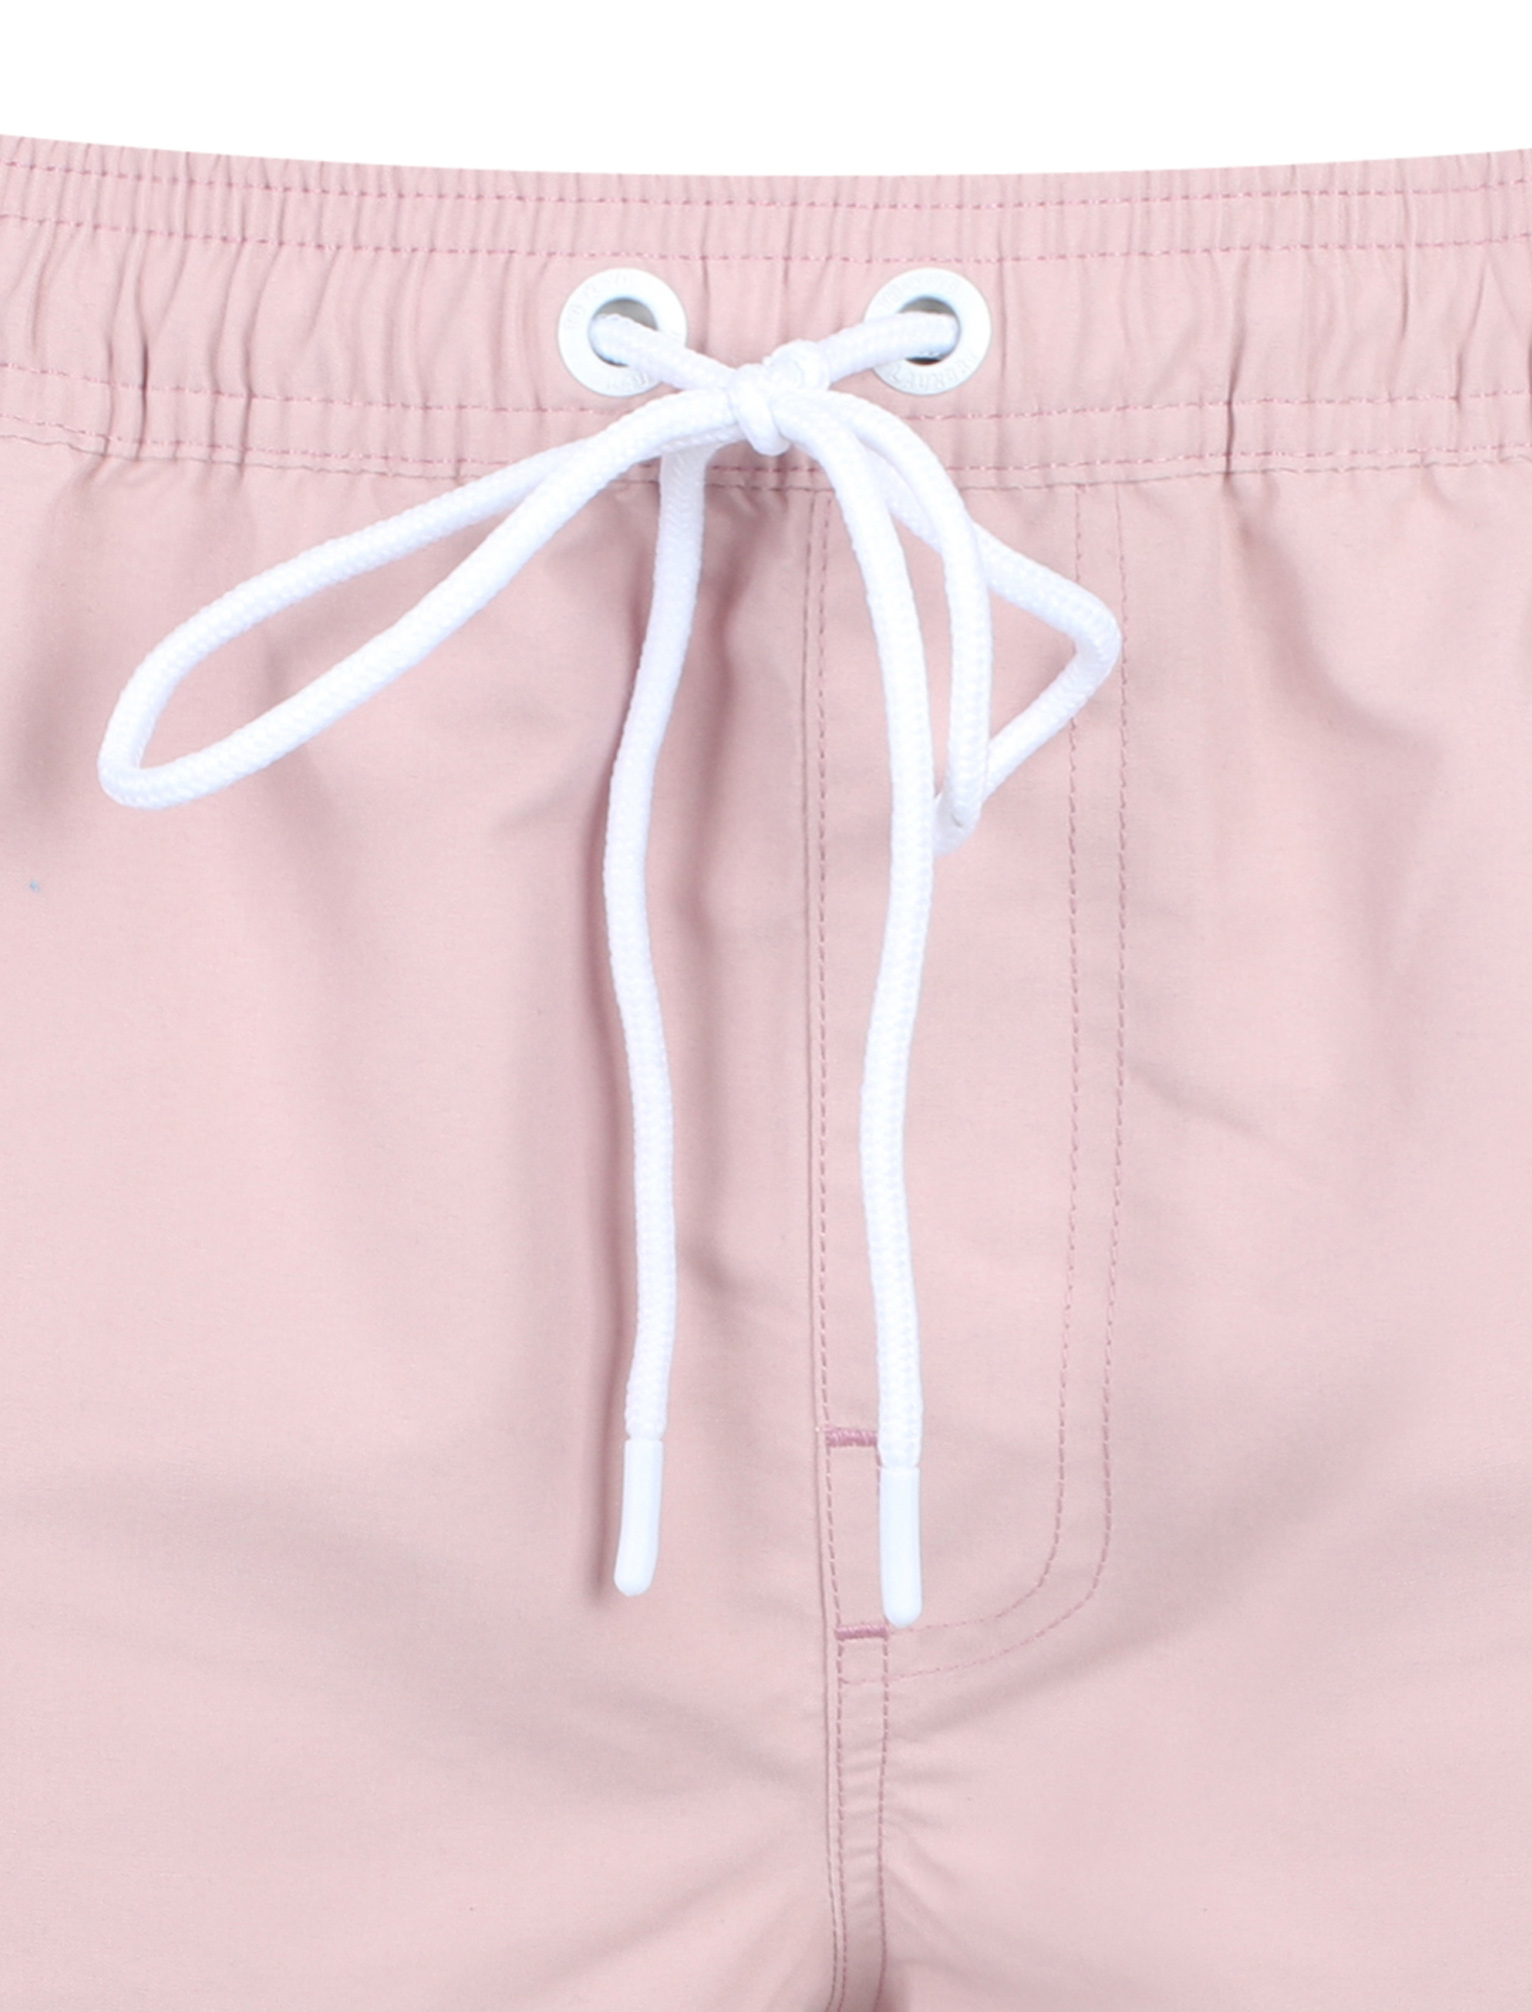 New-Mens-Tokyo-Laundry-Branded-Classic-Soft-Swim-Shorts-With-Pockets-Size-S-XXL thumbnail 24